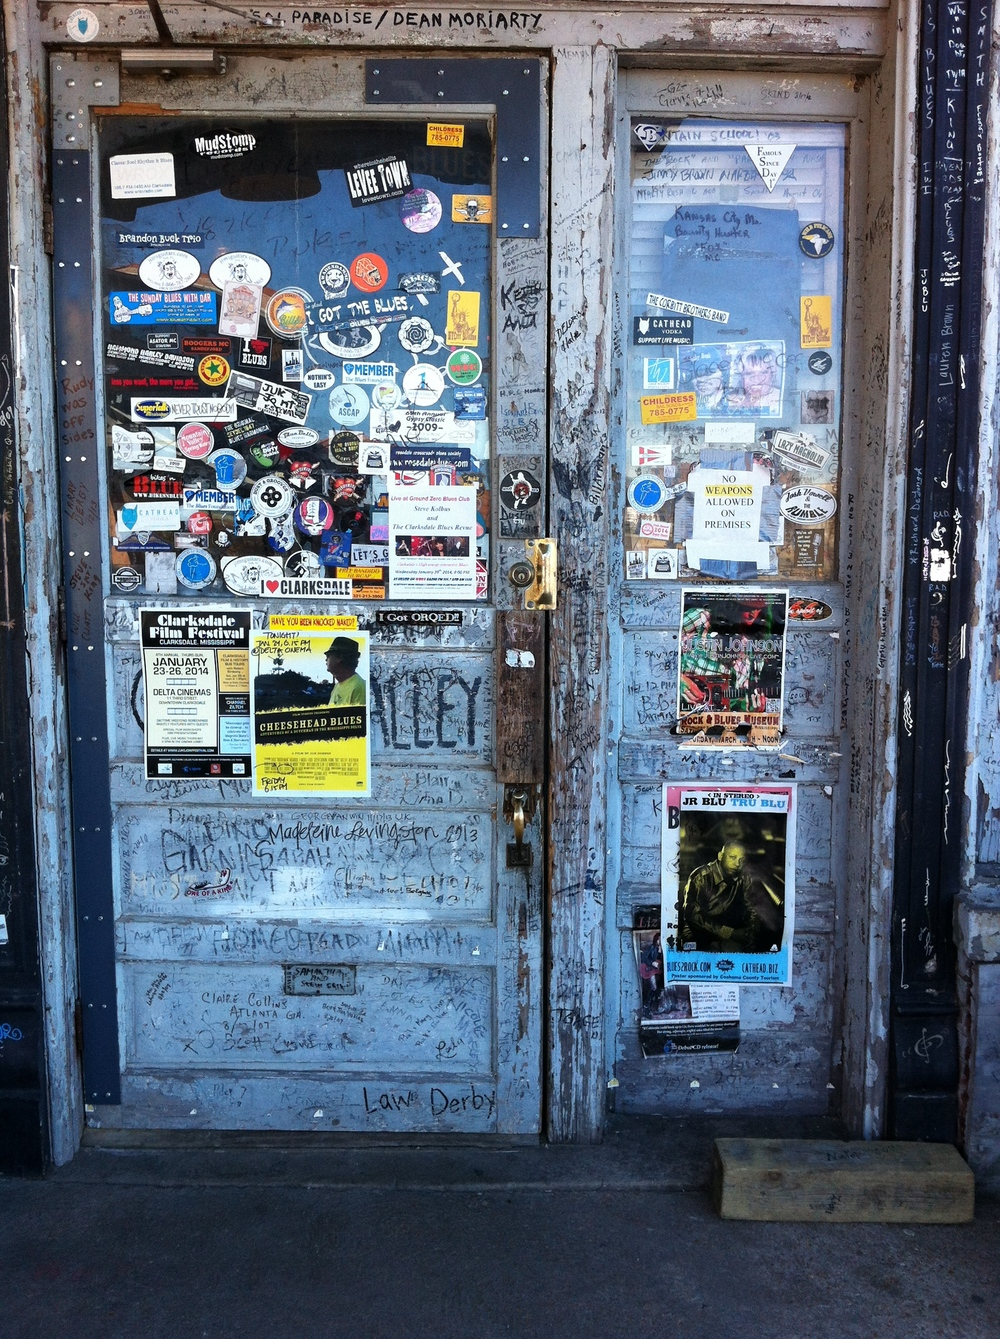 This is the entrance to Ground Zero Blues Club, one of the most authentic and famous blues bars in the world.  The entire inside of the club is like this with people signing their names on every wall, everywhere.  It is a work of art.